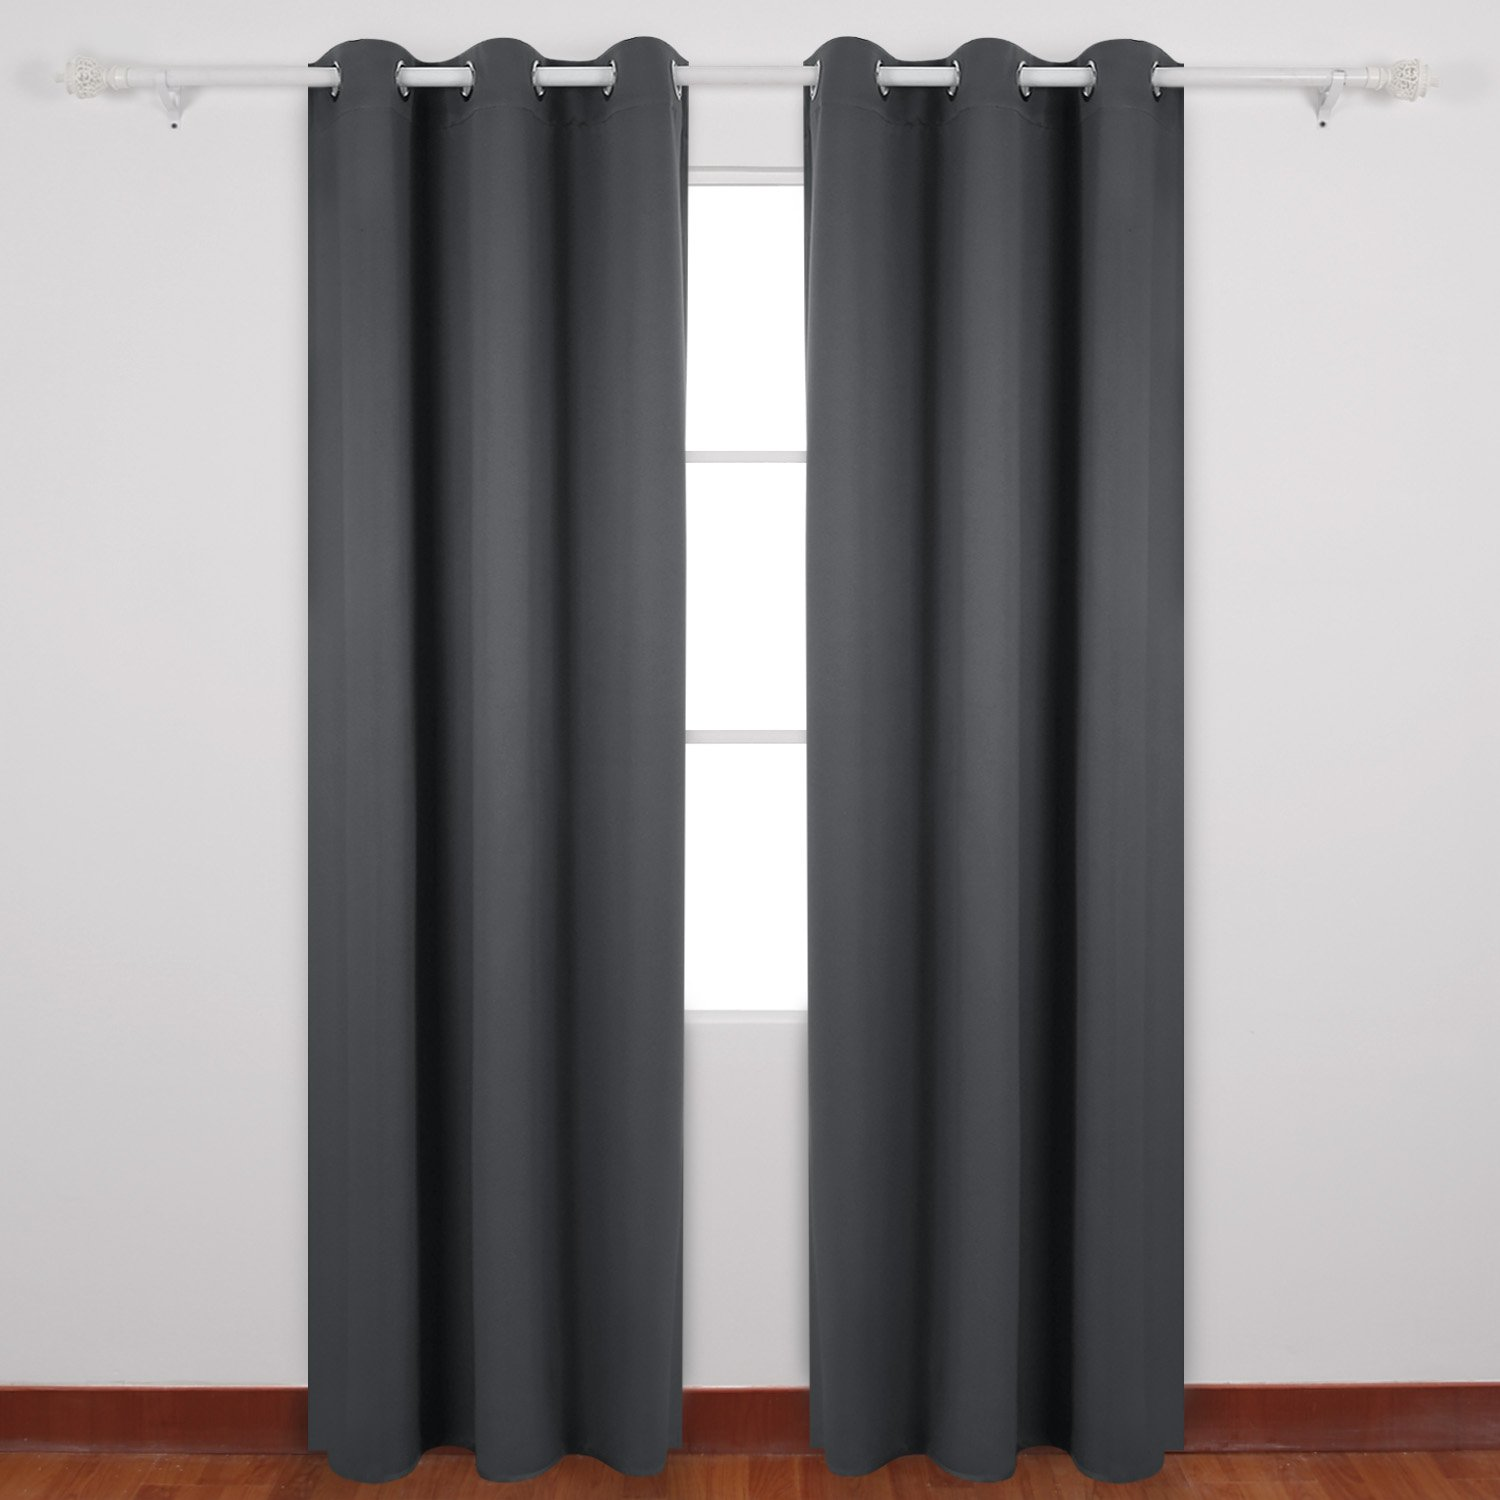 Deconovo Room Darkening Thermal Insulated Blackout Grommet Window Curtain For Living Room, Dark Grey